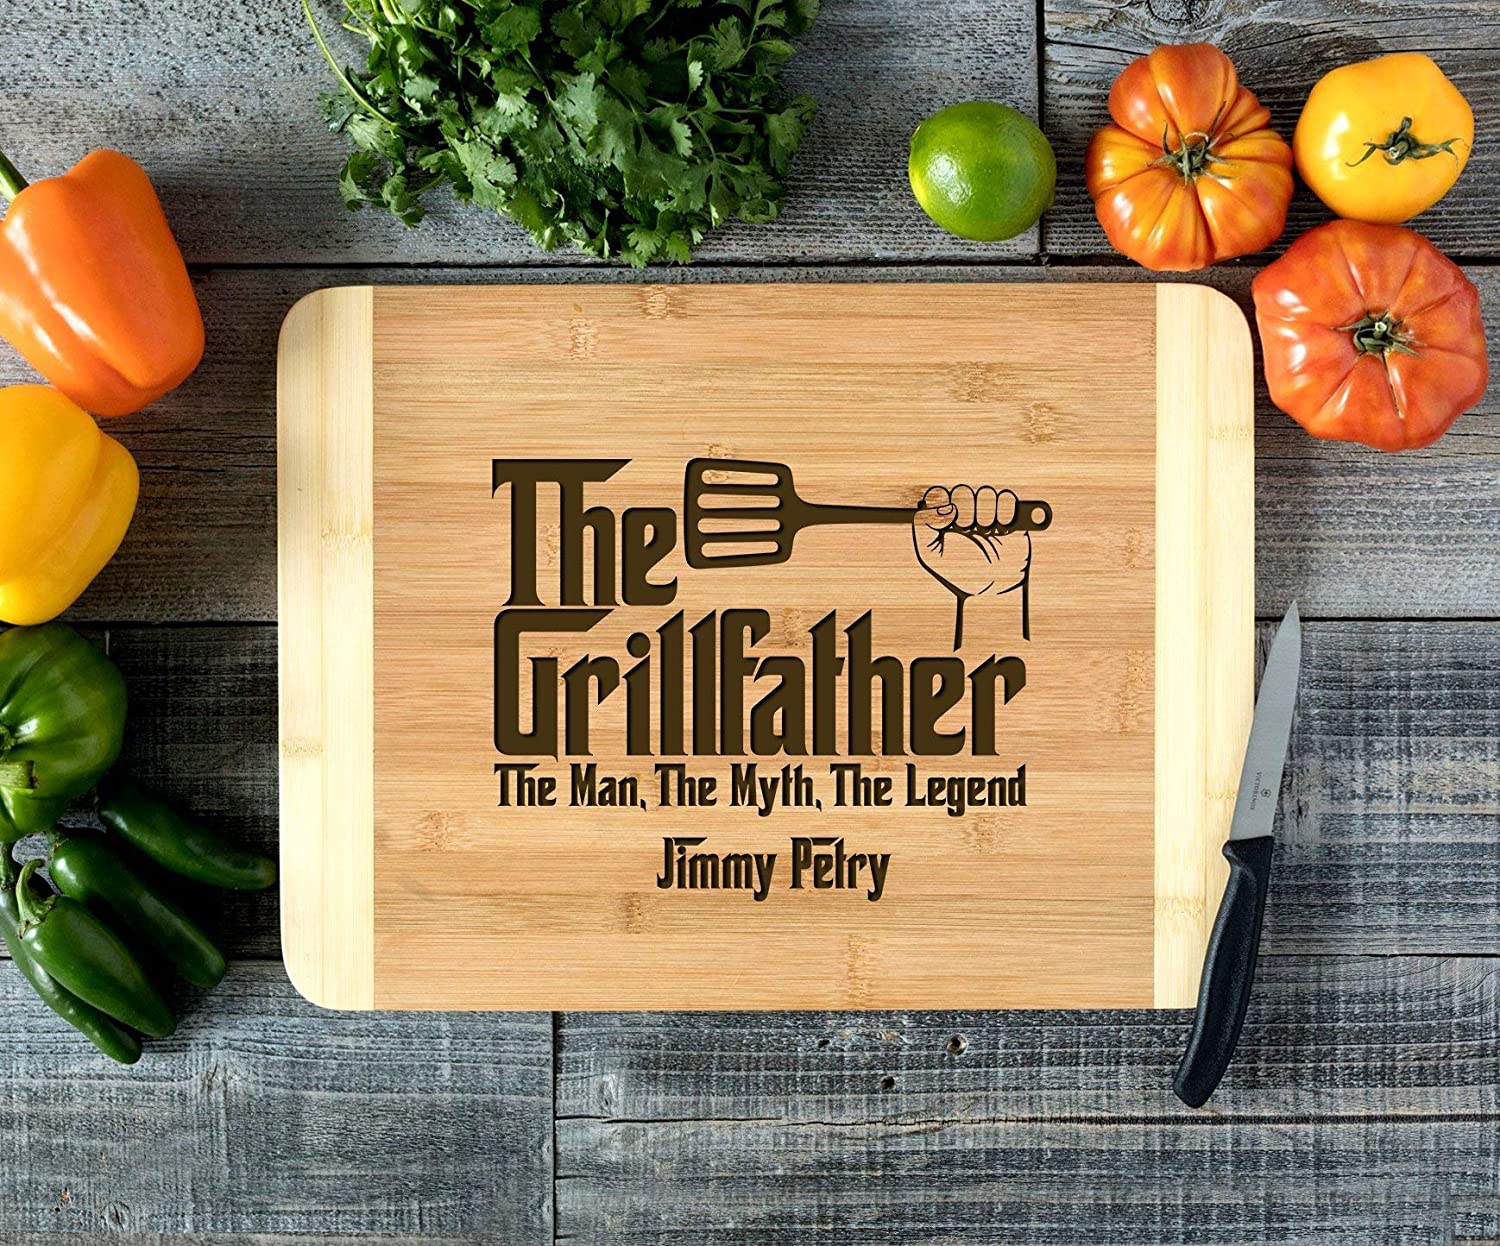 Personalized Cutting Board Engraved Cutting Board HDS Grillfather